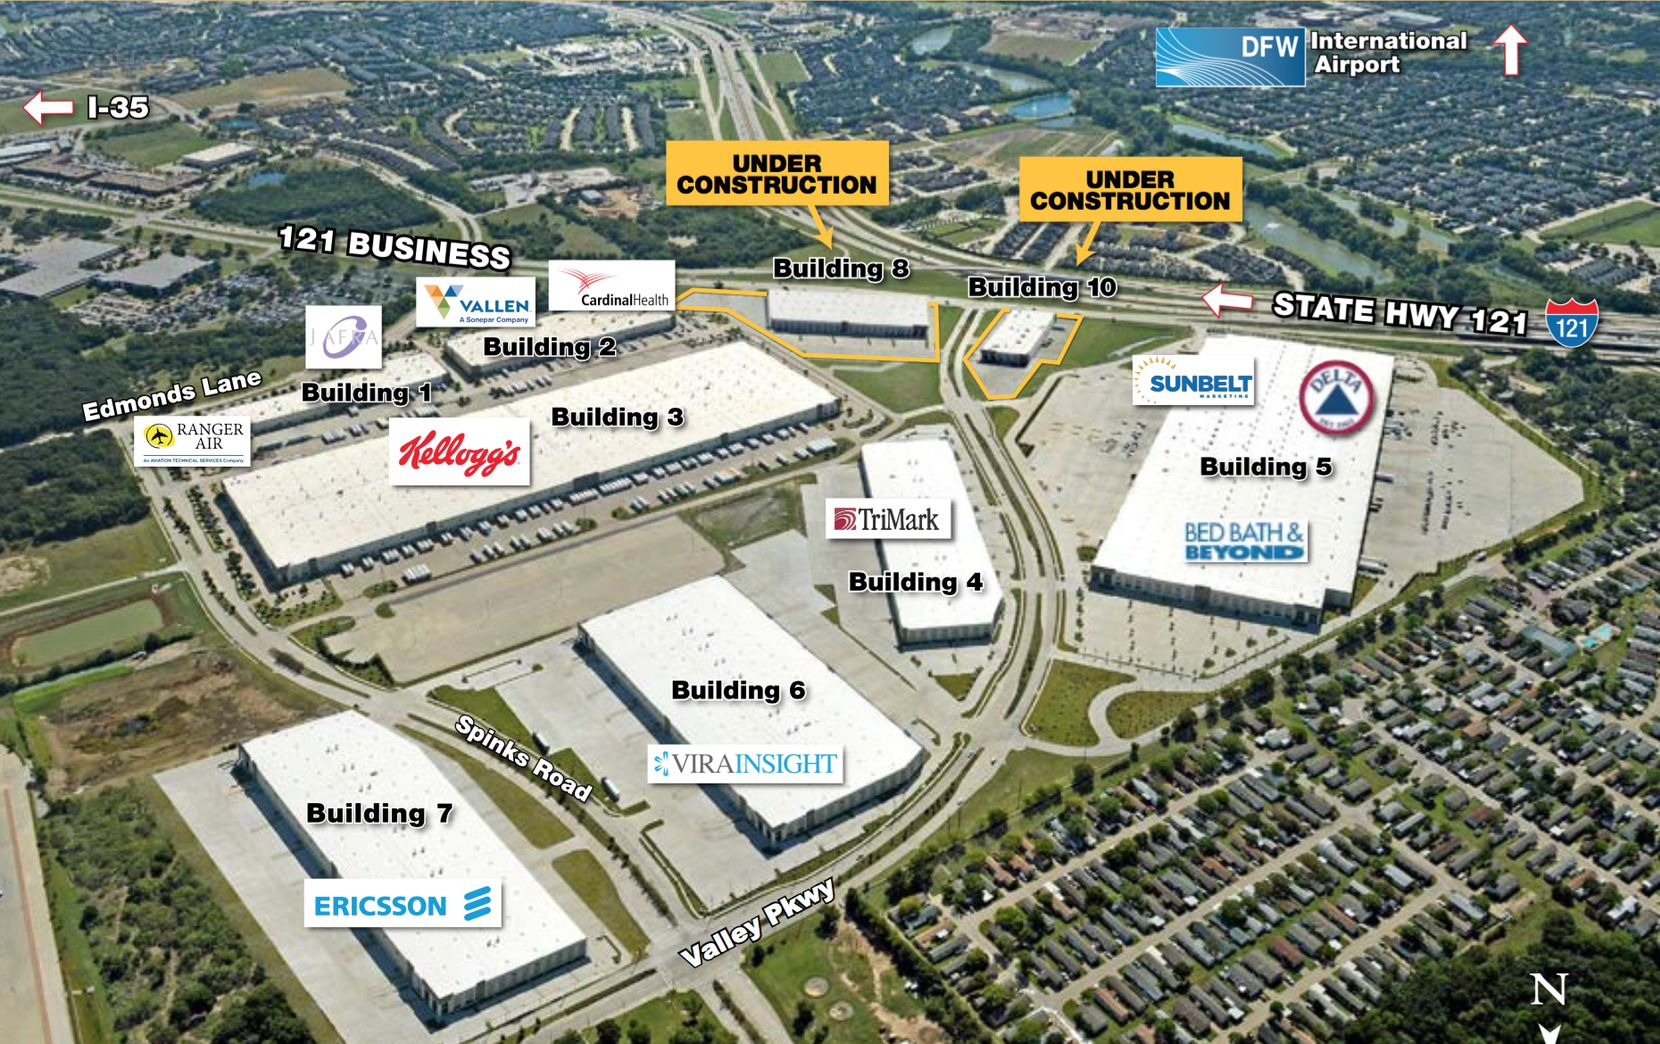 Majestic Airport Center DFW at State Highway 121 and Valley Parkway. Seven buildings have already been constructed.